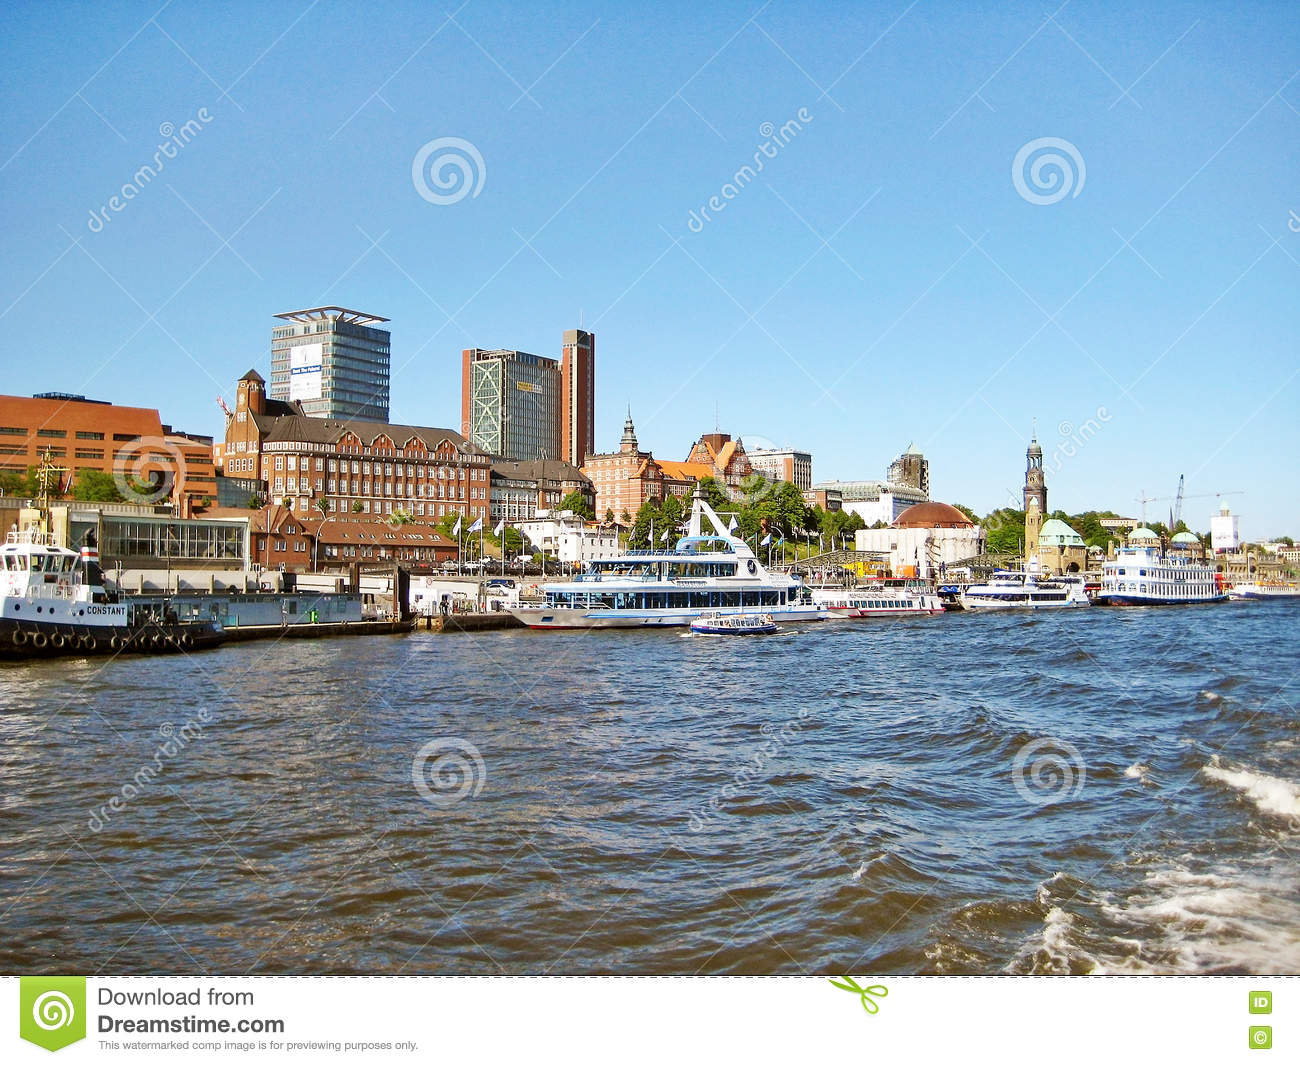 Stock photo hamburg germany riverside new - Hamburg Germany